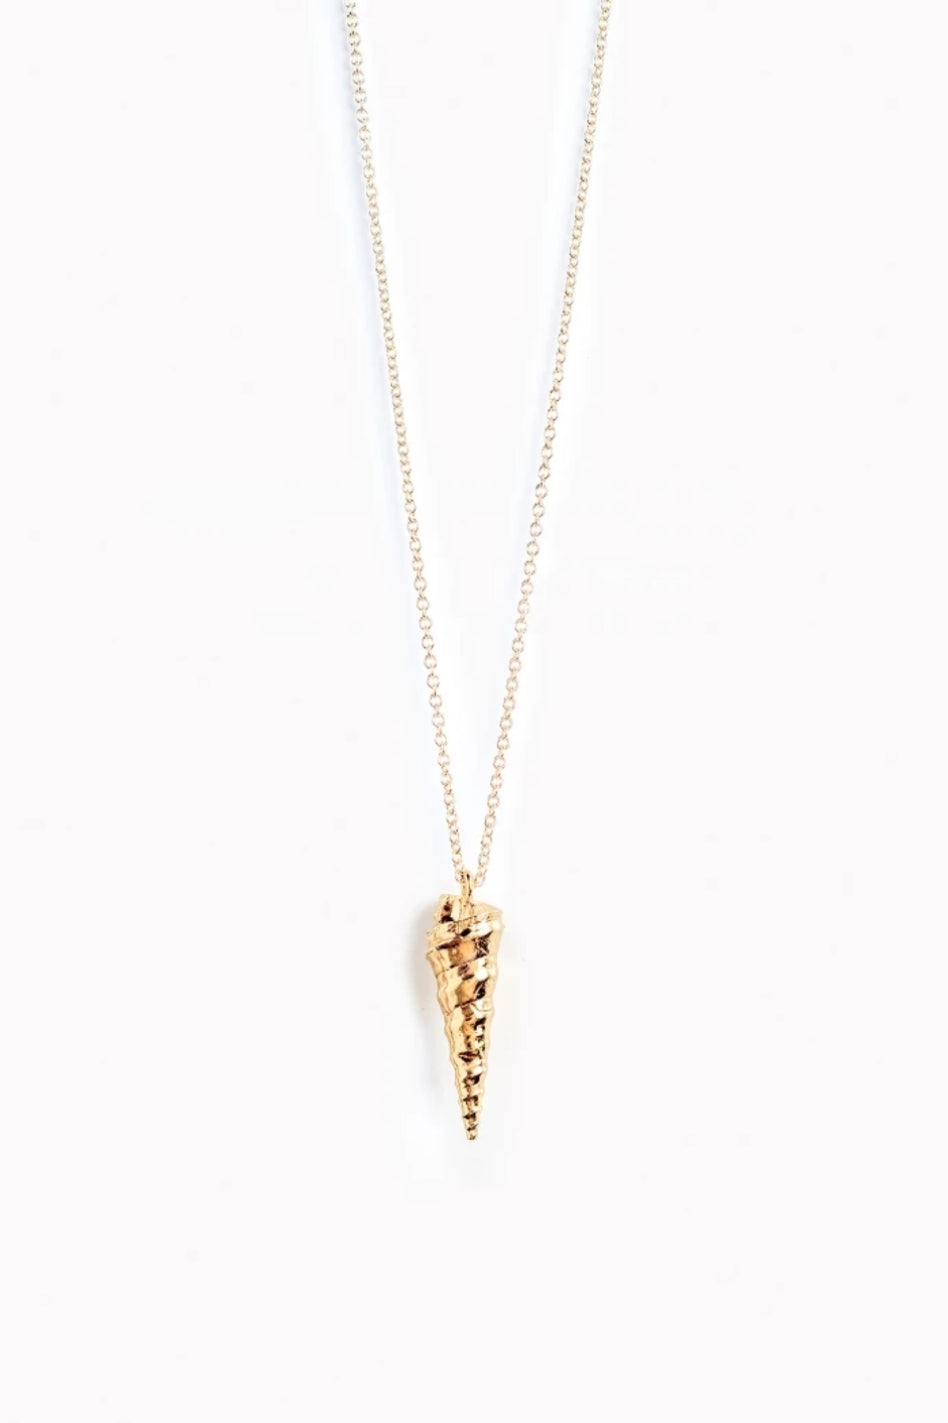 Wanderlust - Amulet Gold Necklace